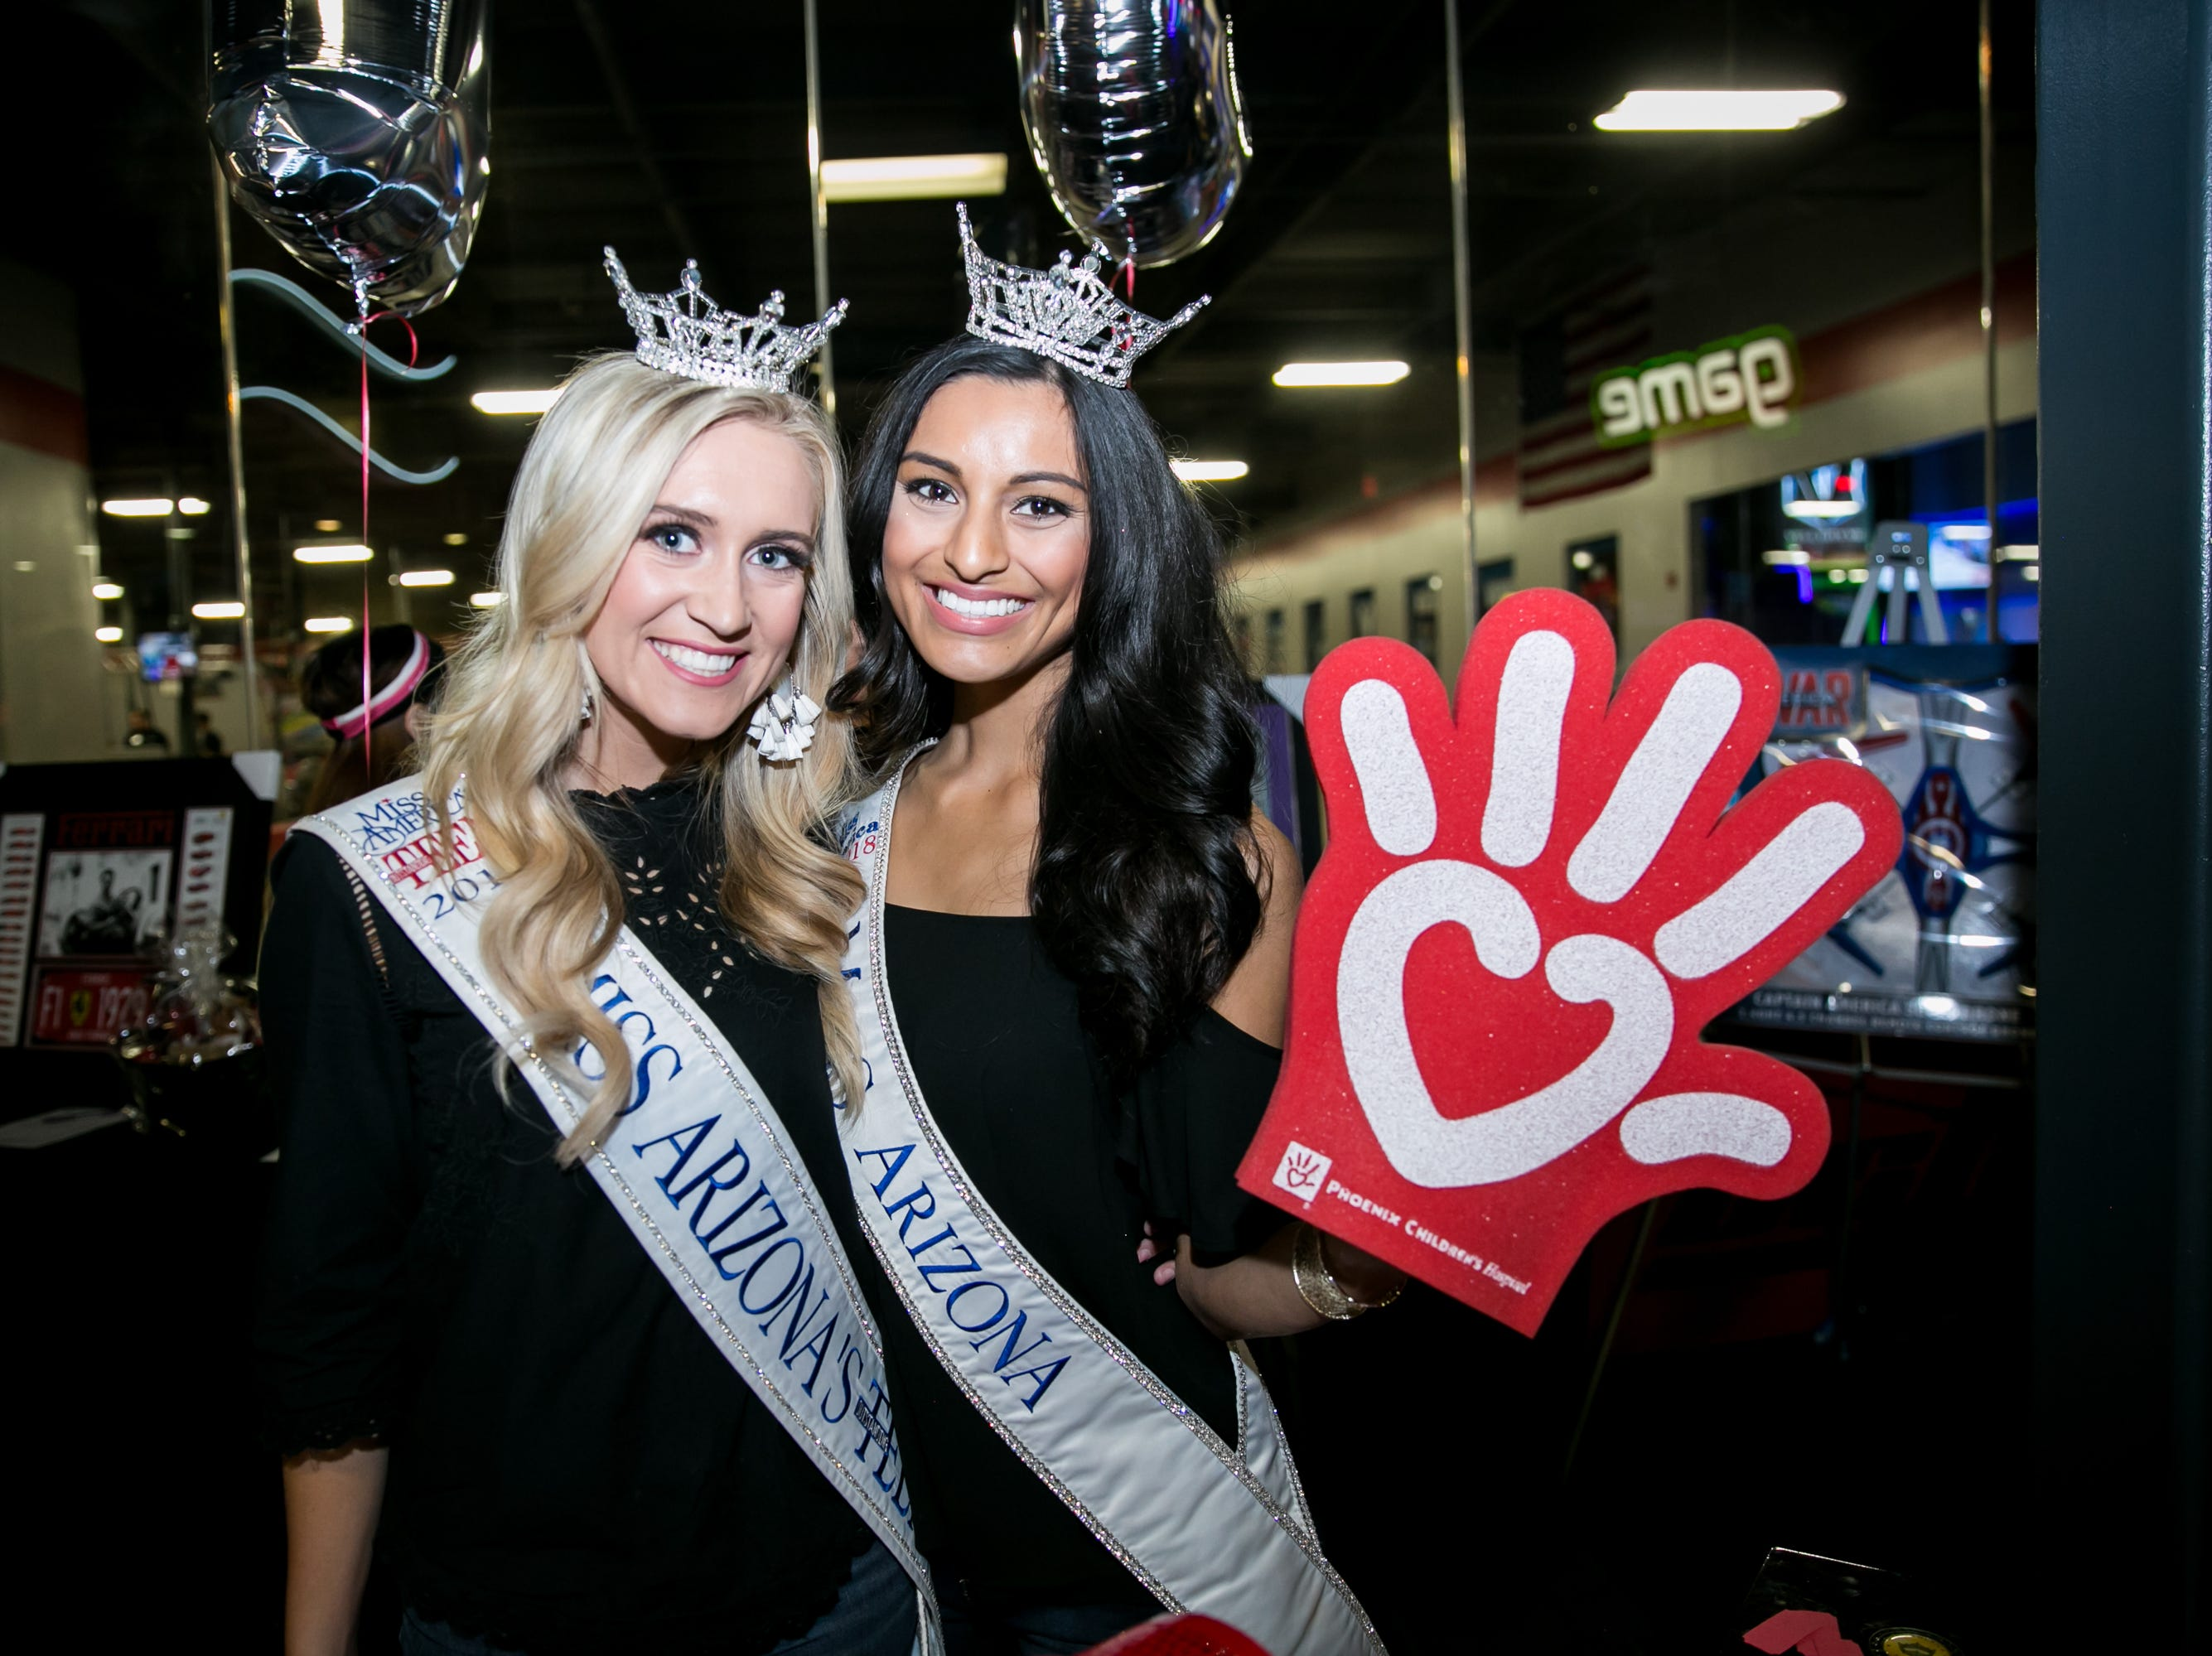 Miss Arizona's Teen and MIss Arizona showed some love for Phoenix Children's Hospital during Octane Raceway's 15th Anniversary Party in Scottsdale on Saturday, October 6, 2018.